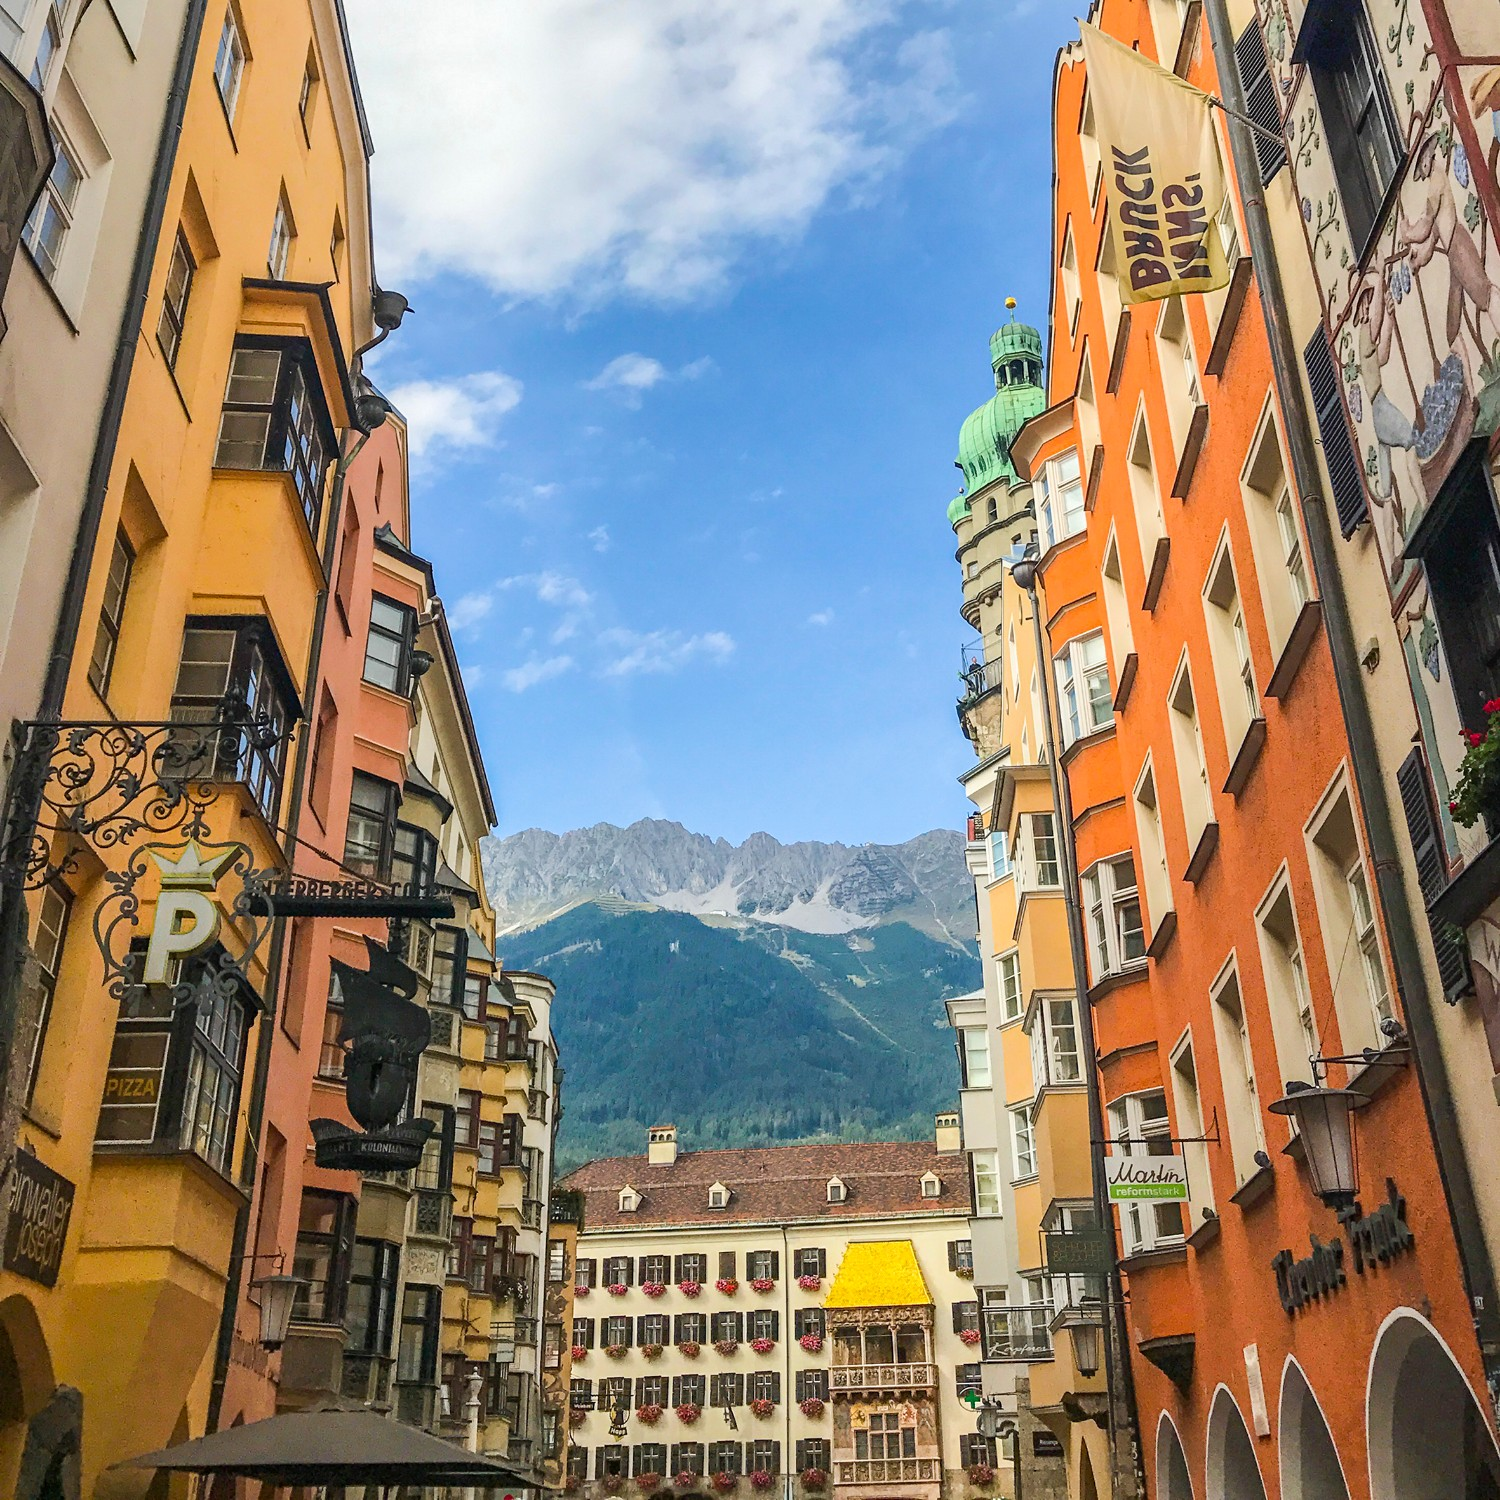 Innsbruck and the mountains